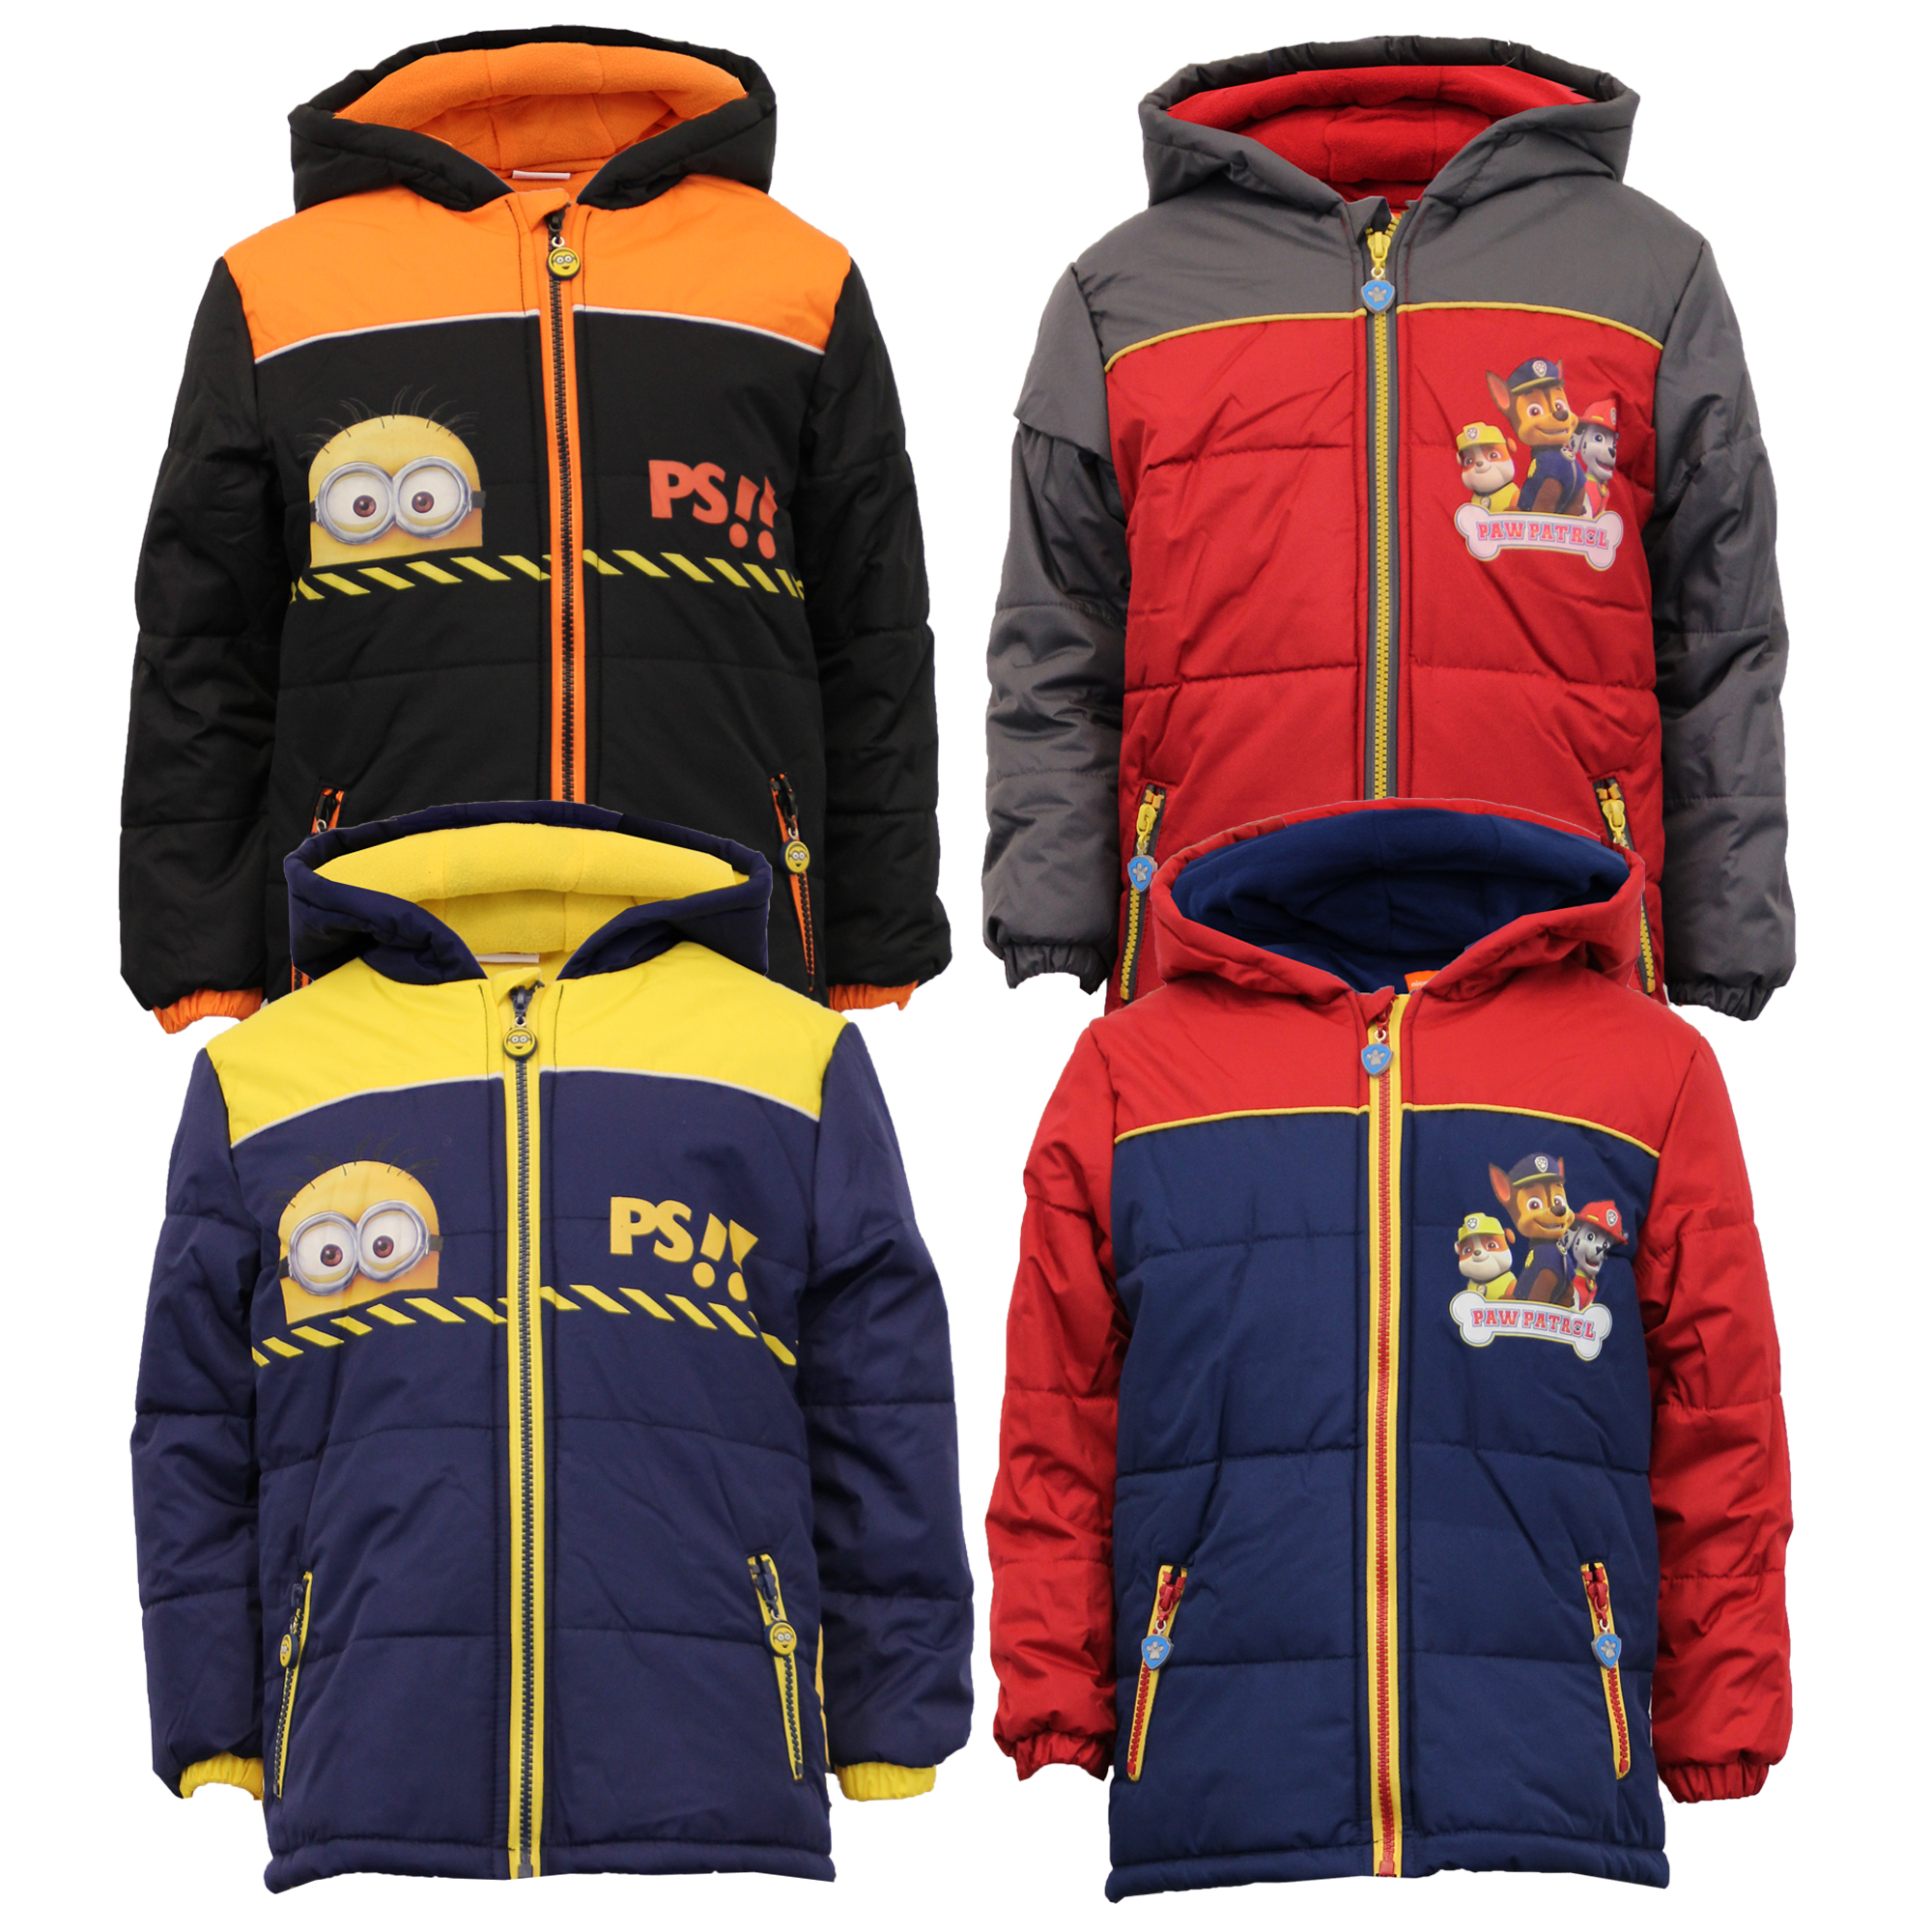 93798fb2c Boys Despicable Me Jacket Coat Padded Hood Nickelodeon Minion Paw ...